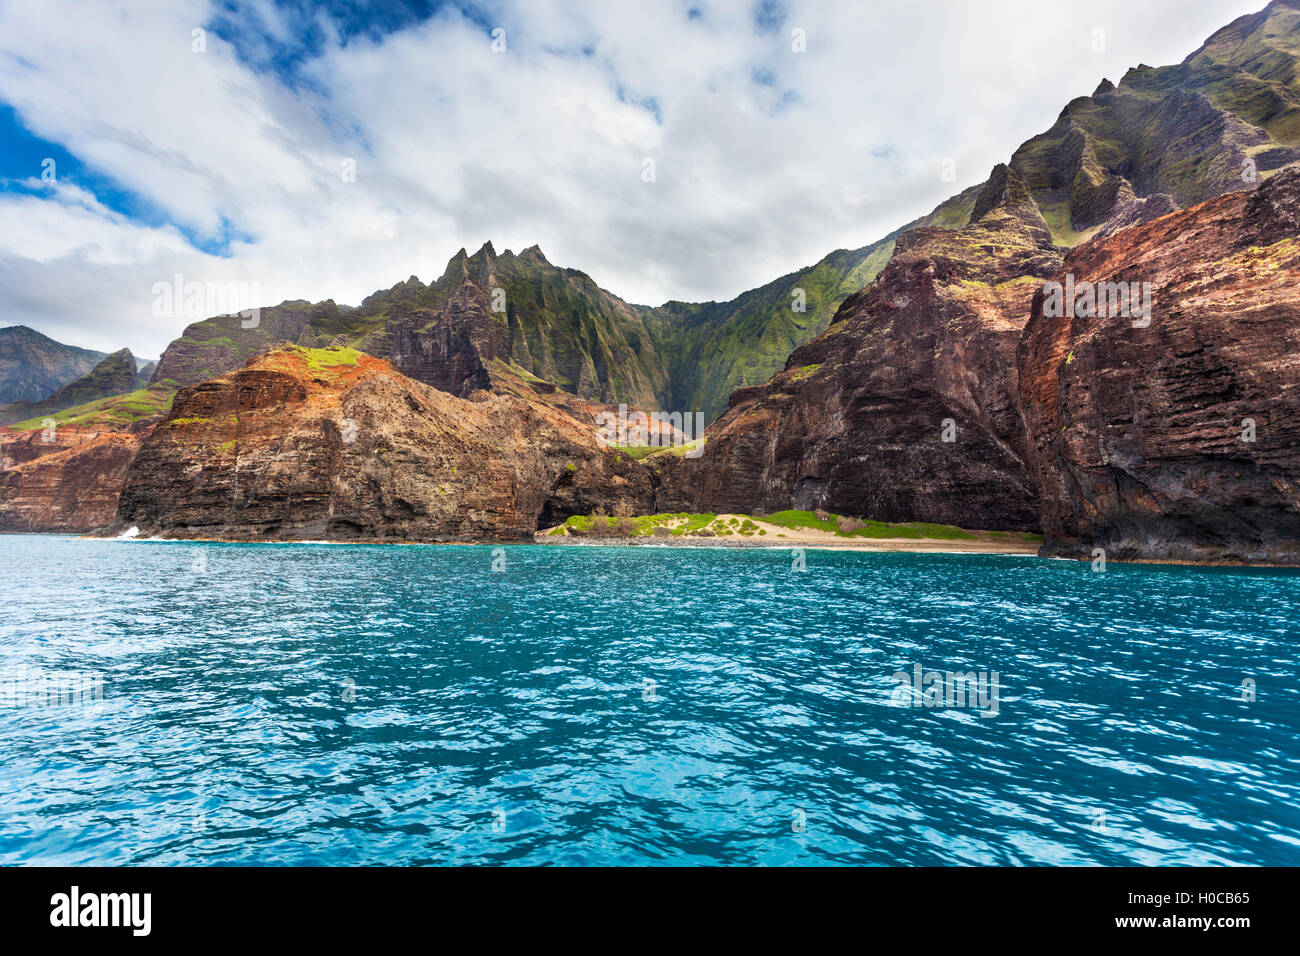 Honopu Beach, Kauai - Stock Image